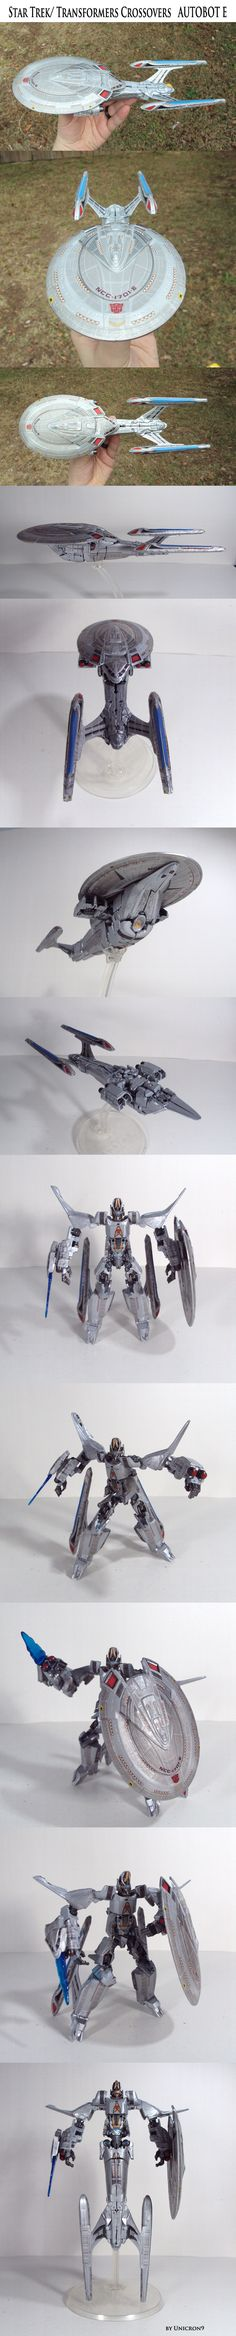 Heavy/Scratch: Star Trek/Transformers Crossovers: Autobot E - TFW2005 - The 2005 Boards